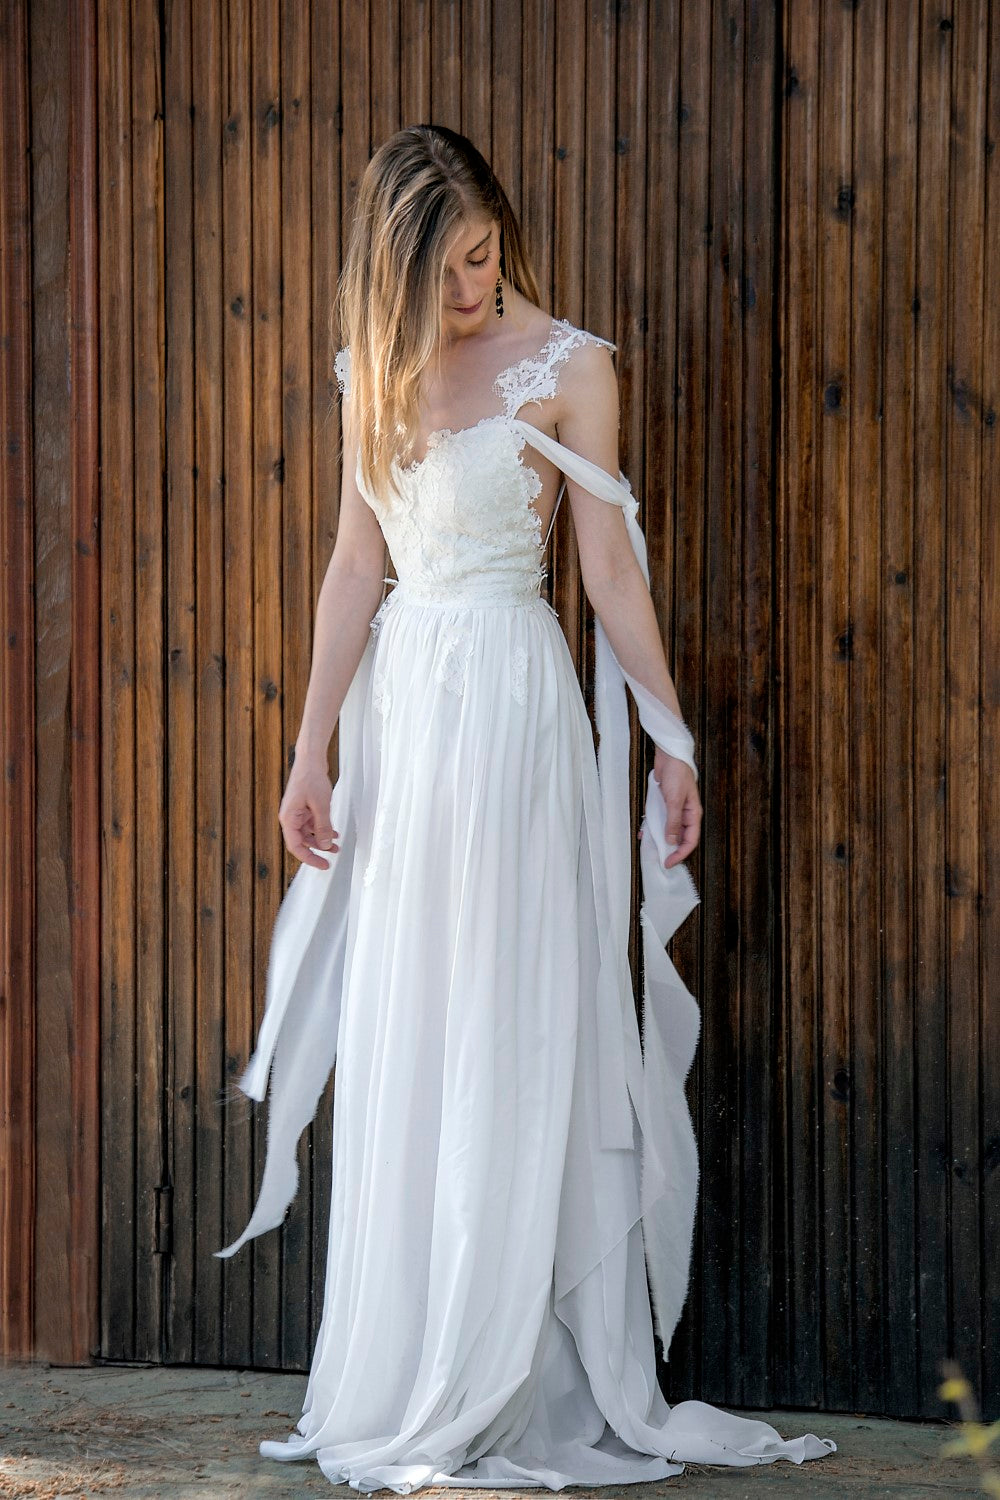 Tina Handmade Grecian Wedding Dress - Wedding Dress - SuzannaM Designs